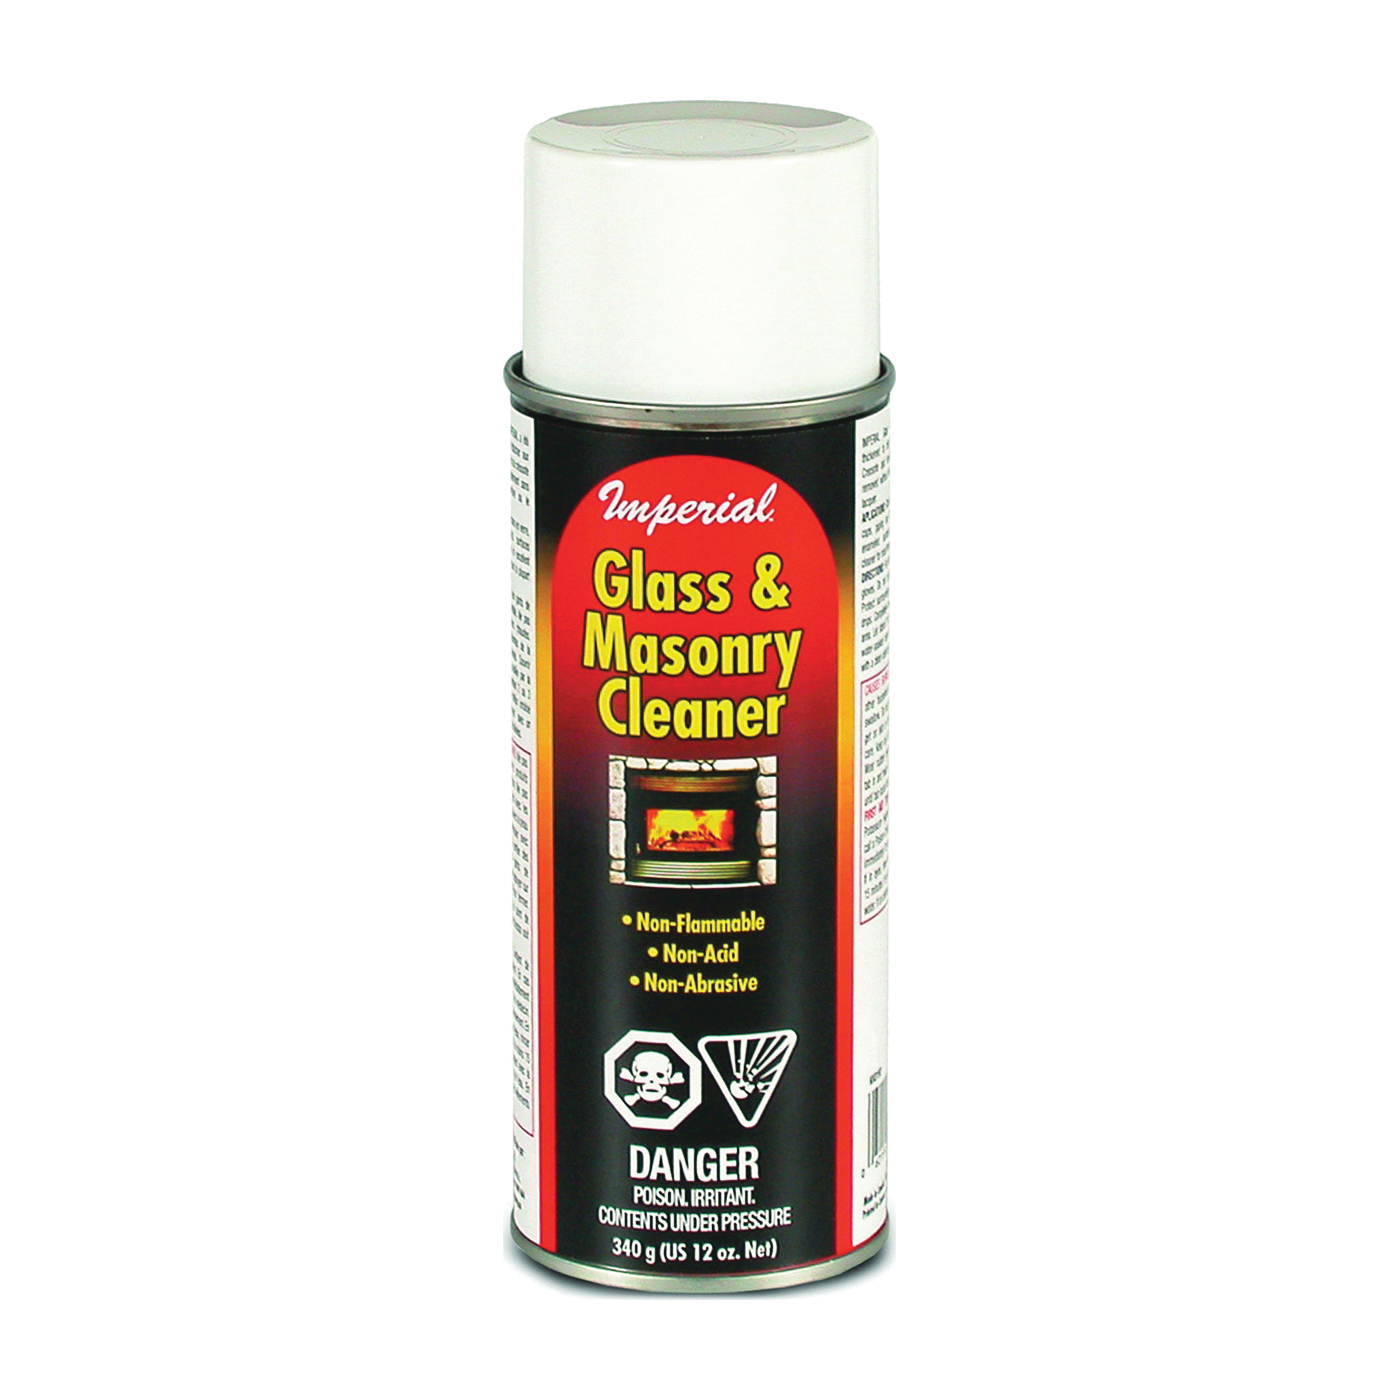 Picture of Imperial KK0331 Glass and Masonry Cleaner, Liquid, Yellow, 12 oz Package, Bottle